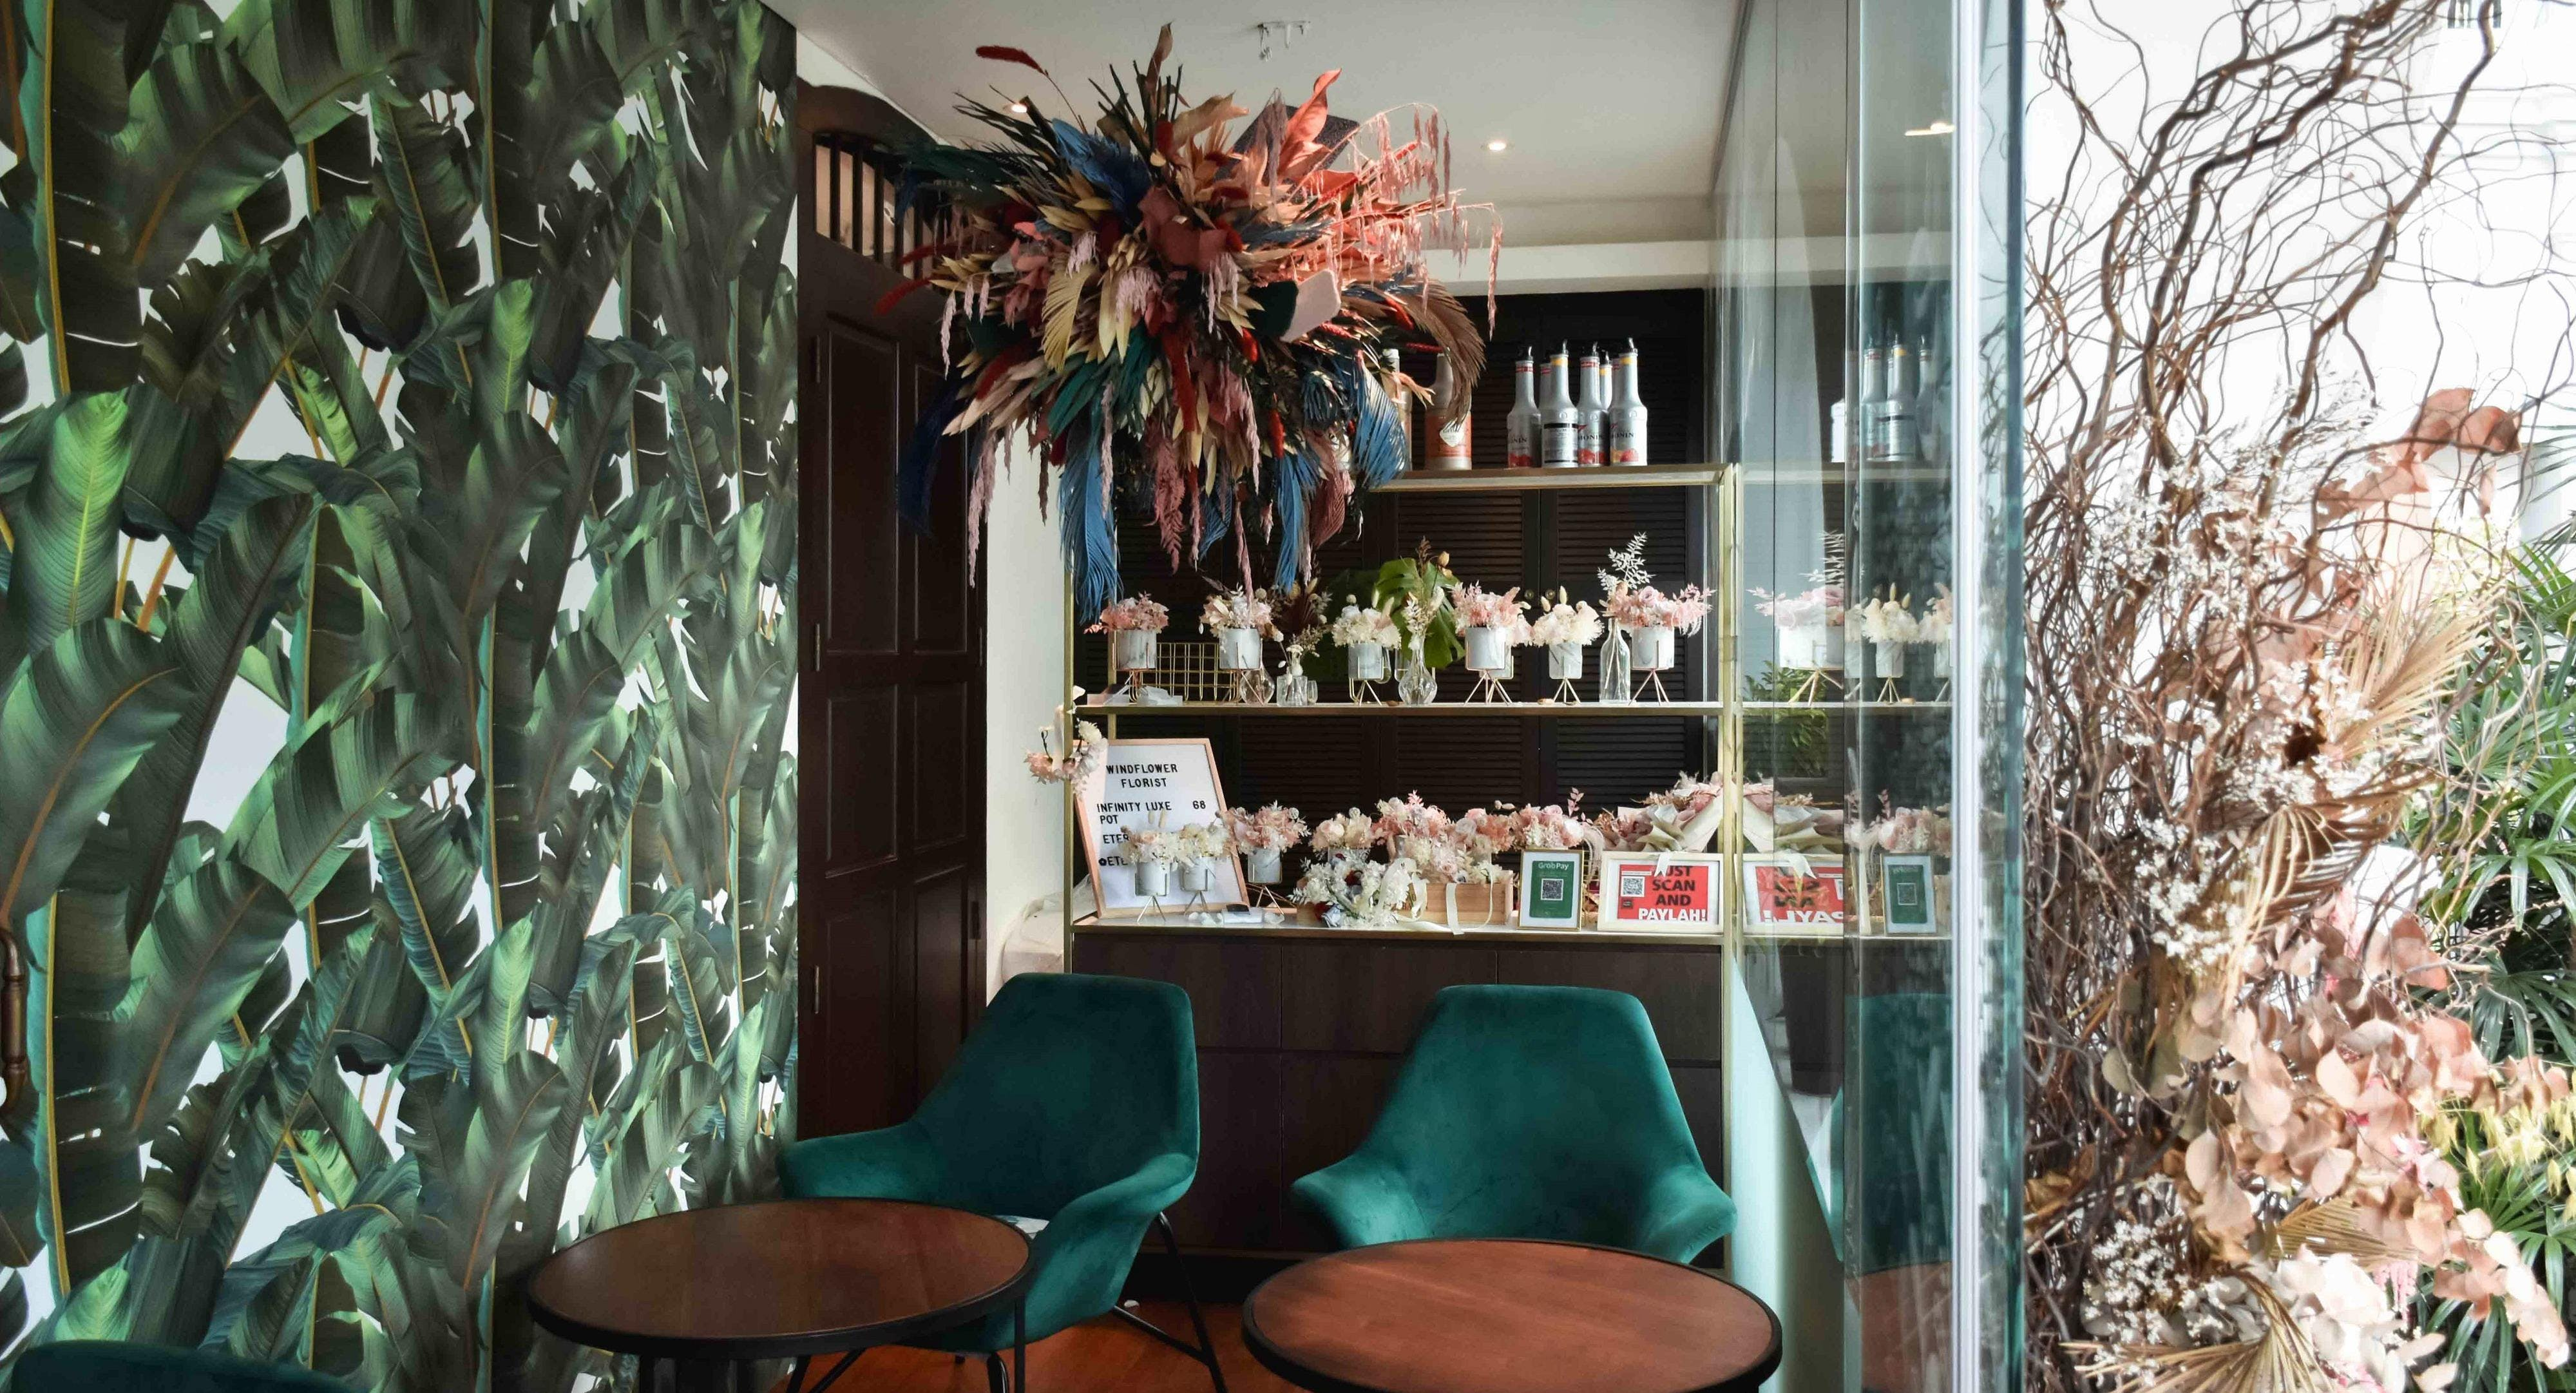 Wildseed Cafe at The Alkaff Mansion Singapore image 3